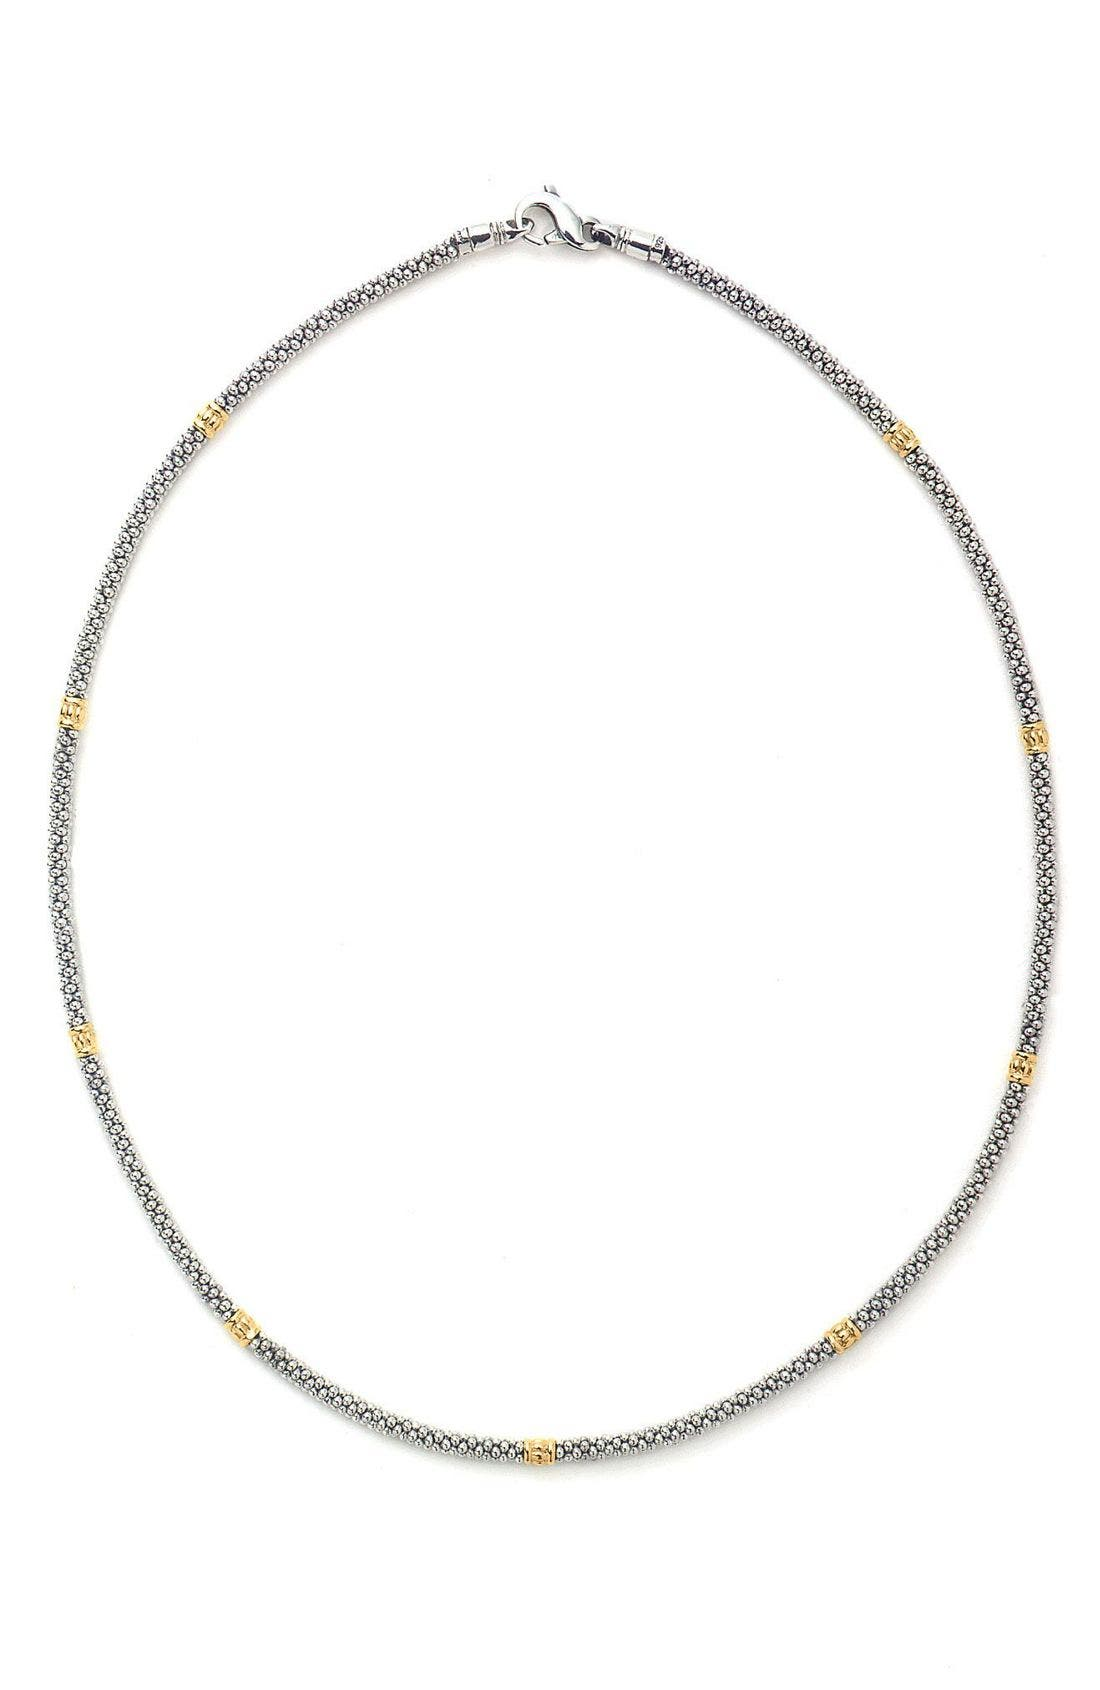 Main Image - LAGOS Caviar Rope Necklace